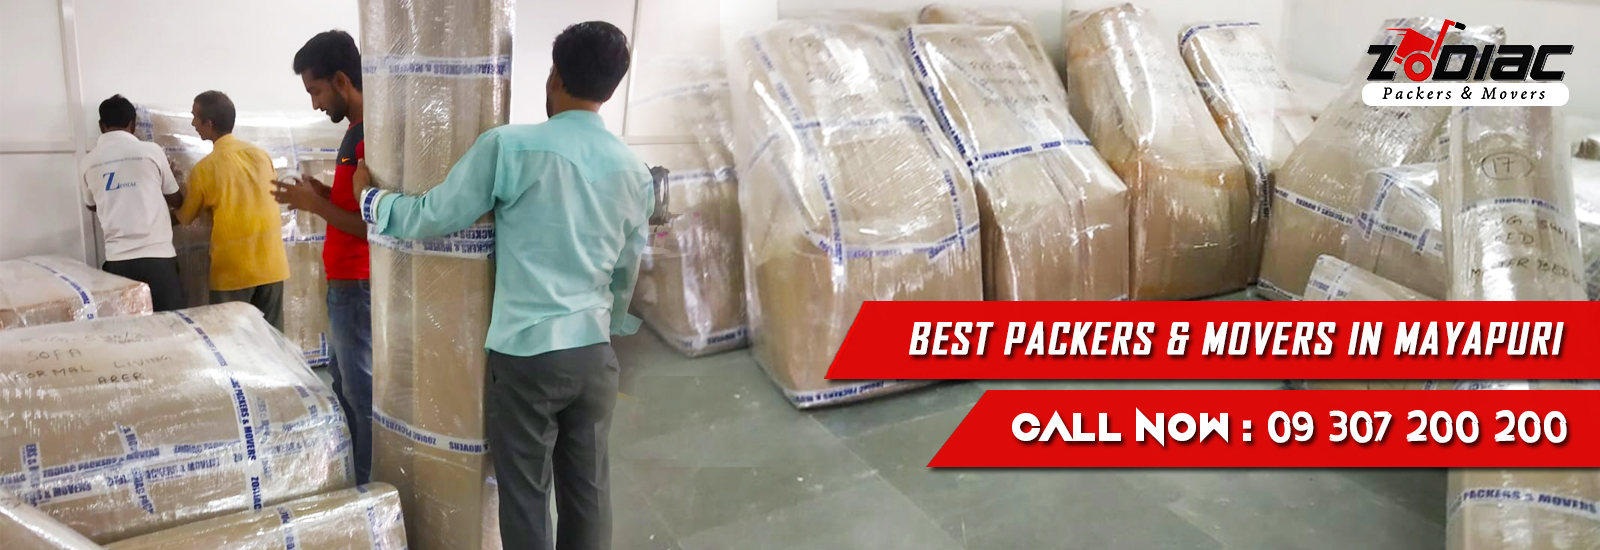 Packers and Movers in Mayapuri